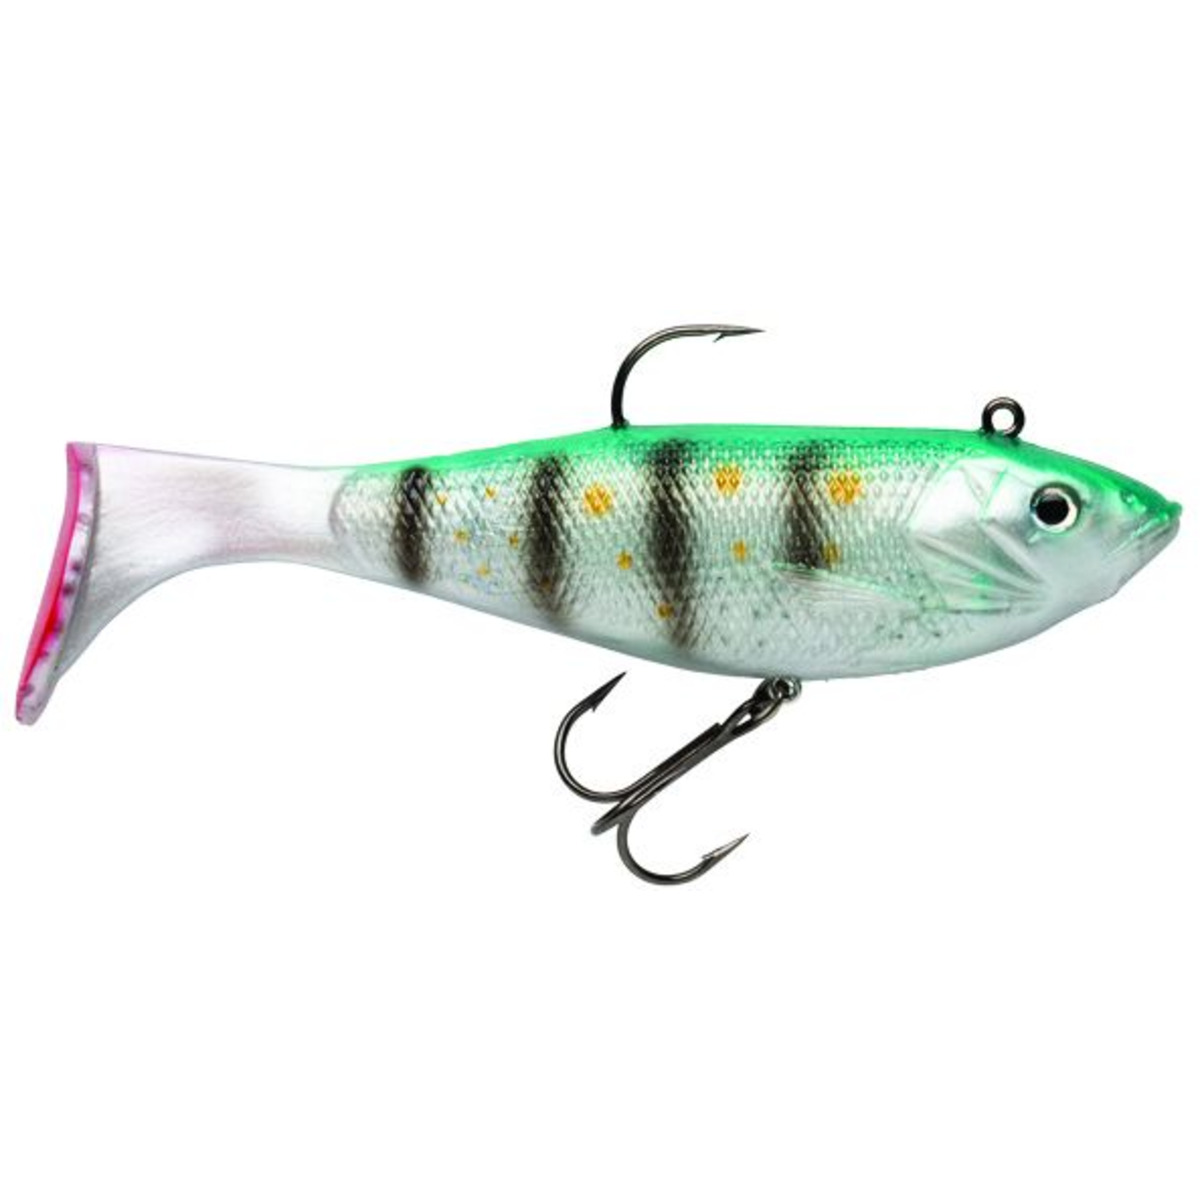 Storm Suspending Wild Tail Shad - 20 cm - 65 g - Green Cloud